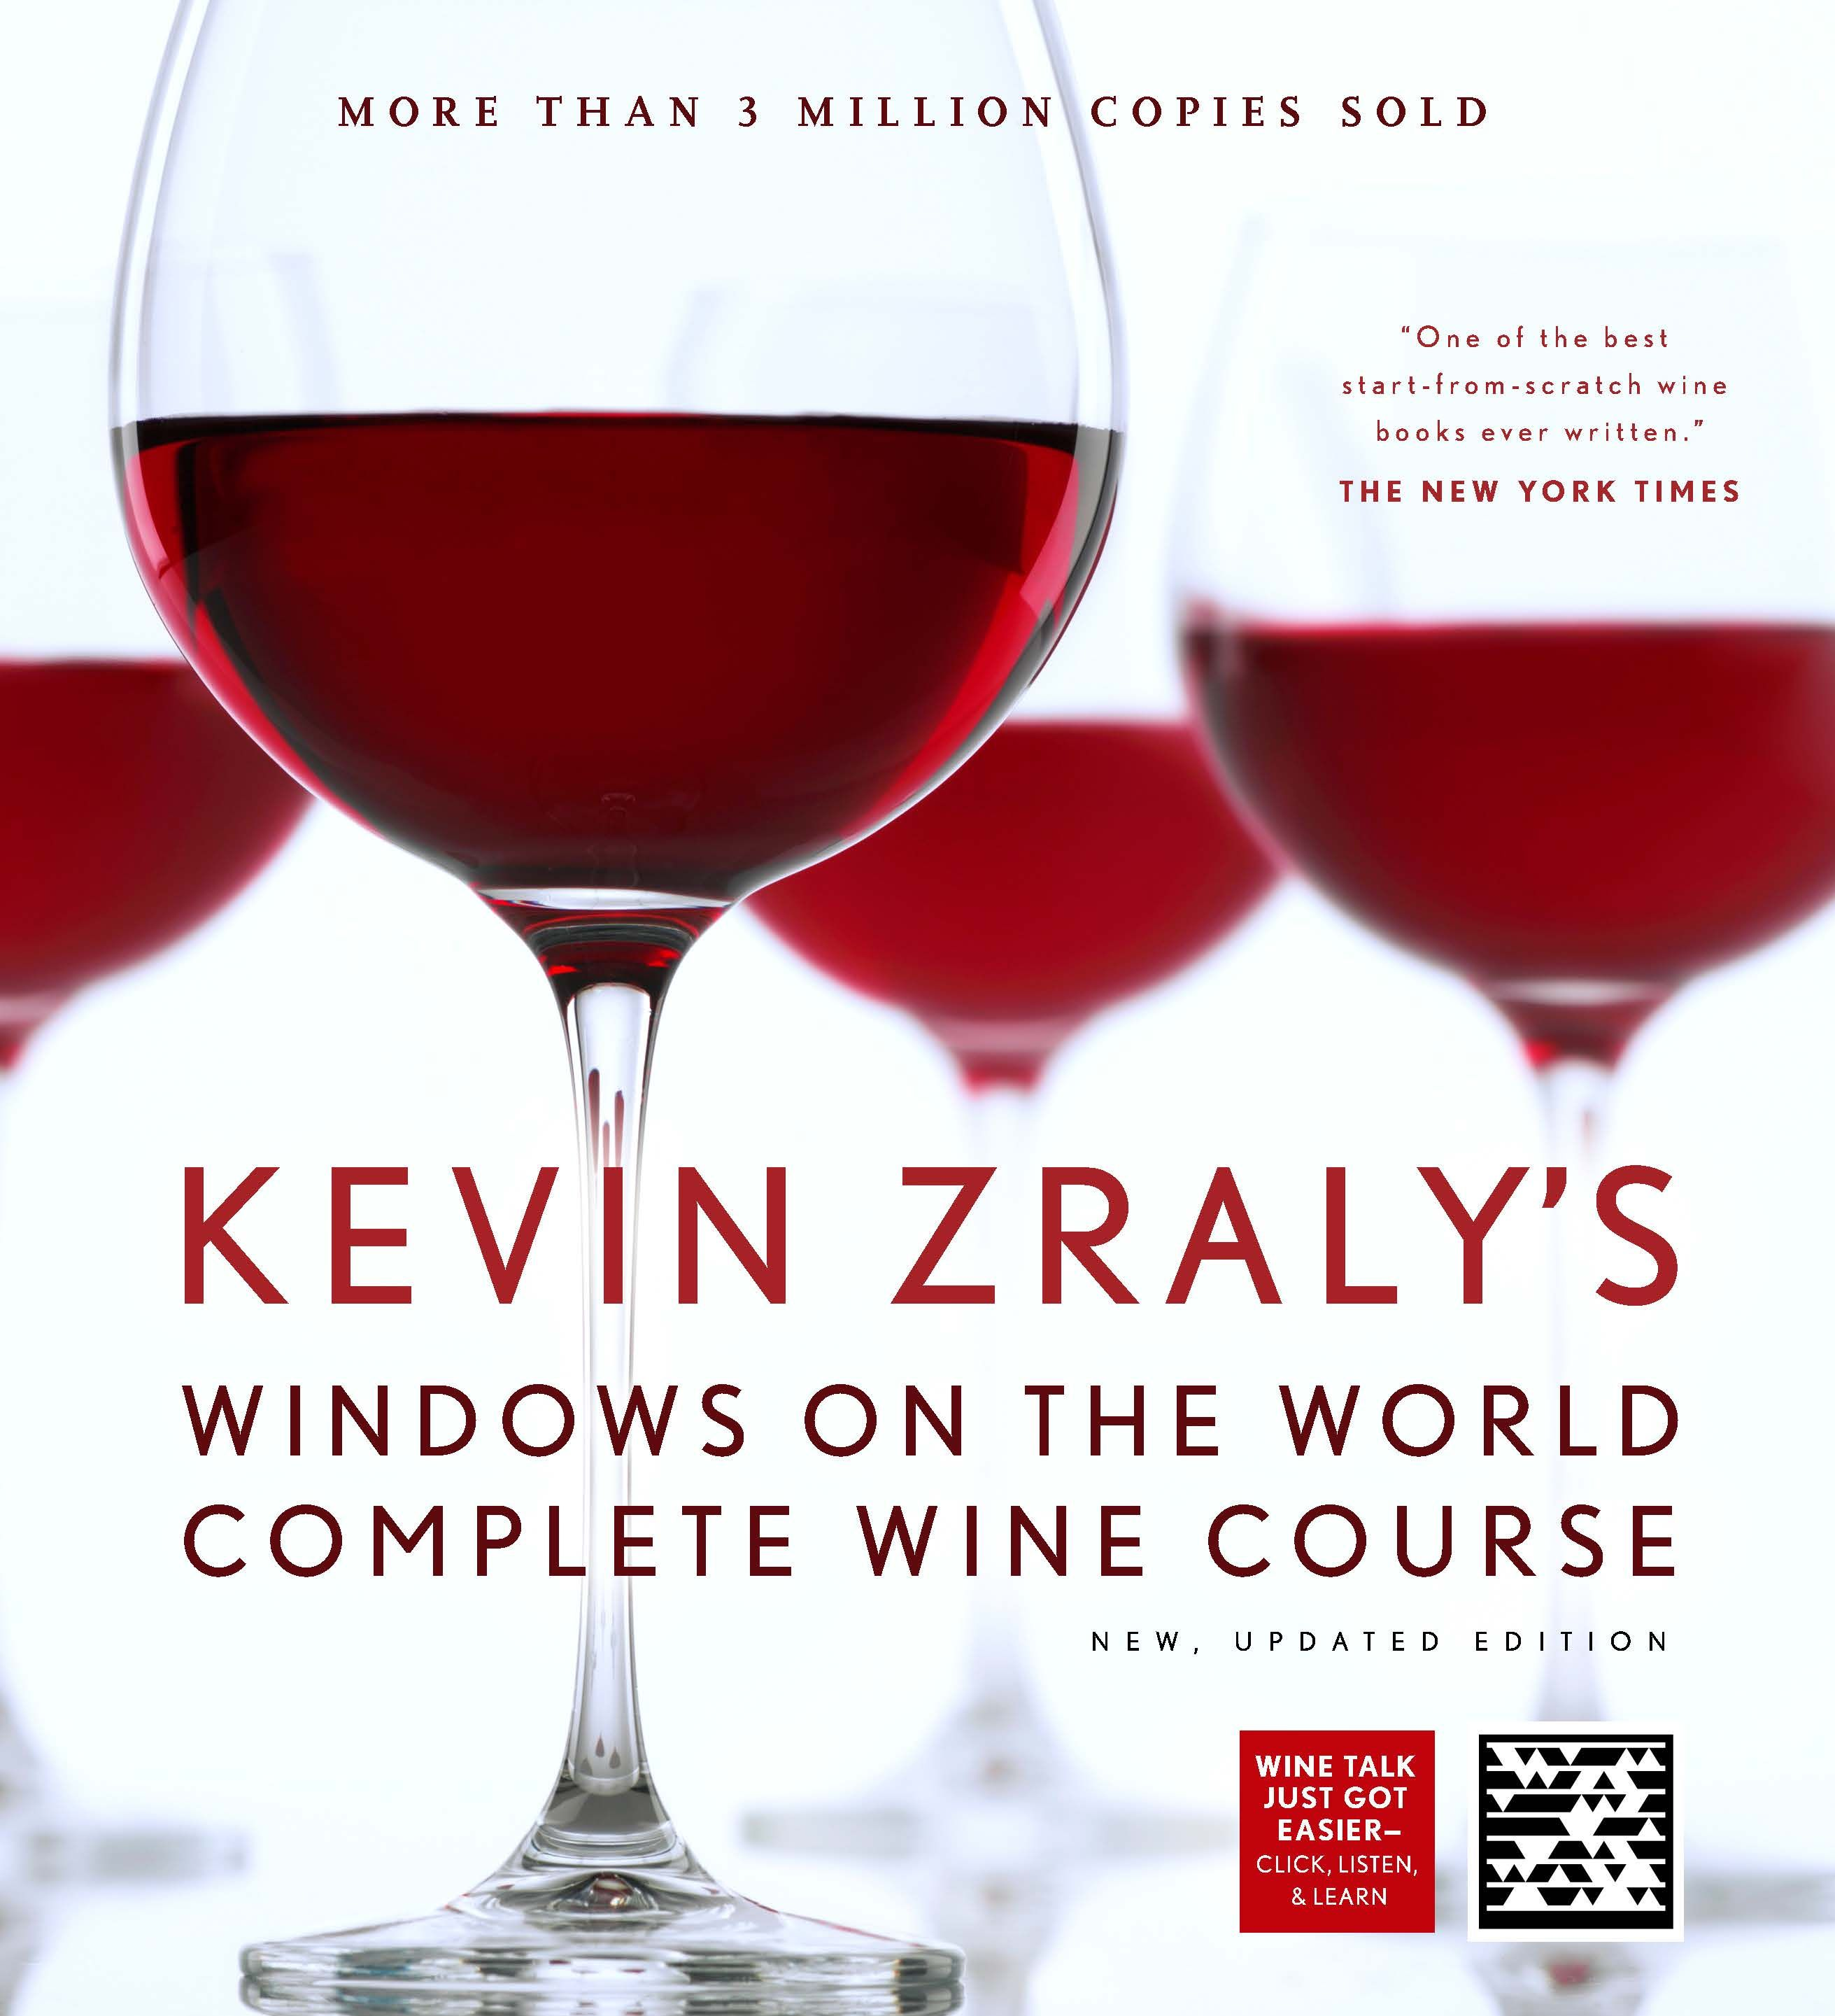 Kevin Zraly S Windows On The World Complete Wine Course Wine Course Wine Education Wine Book